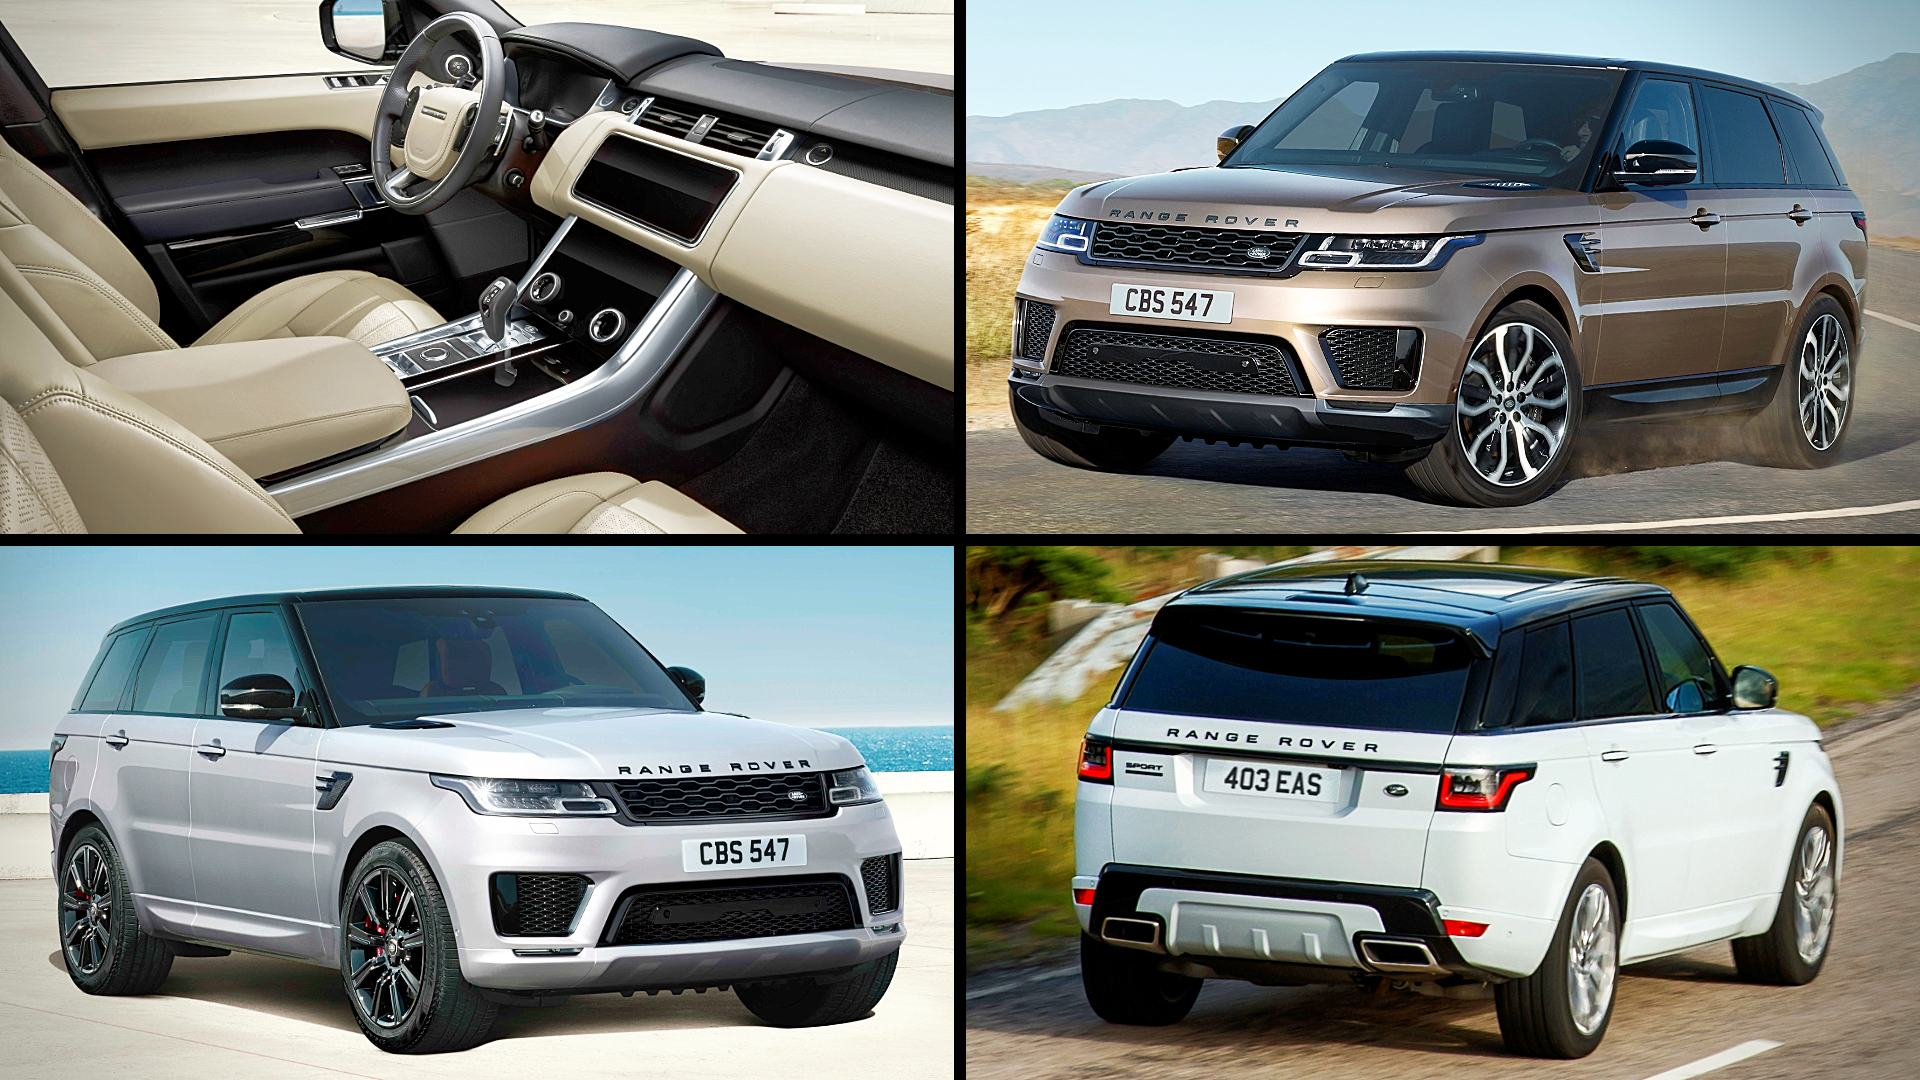 2021 Range Rover Sport Supercharged Images